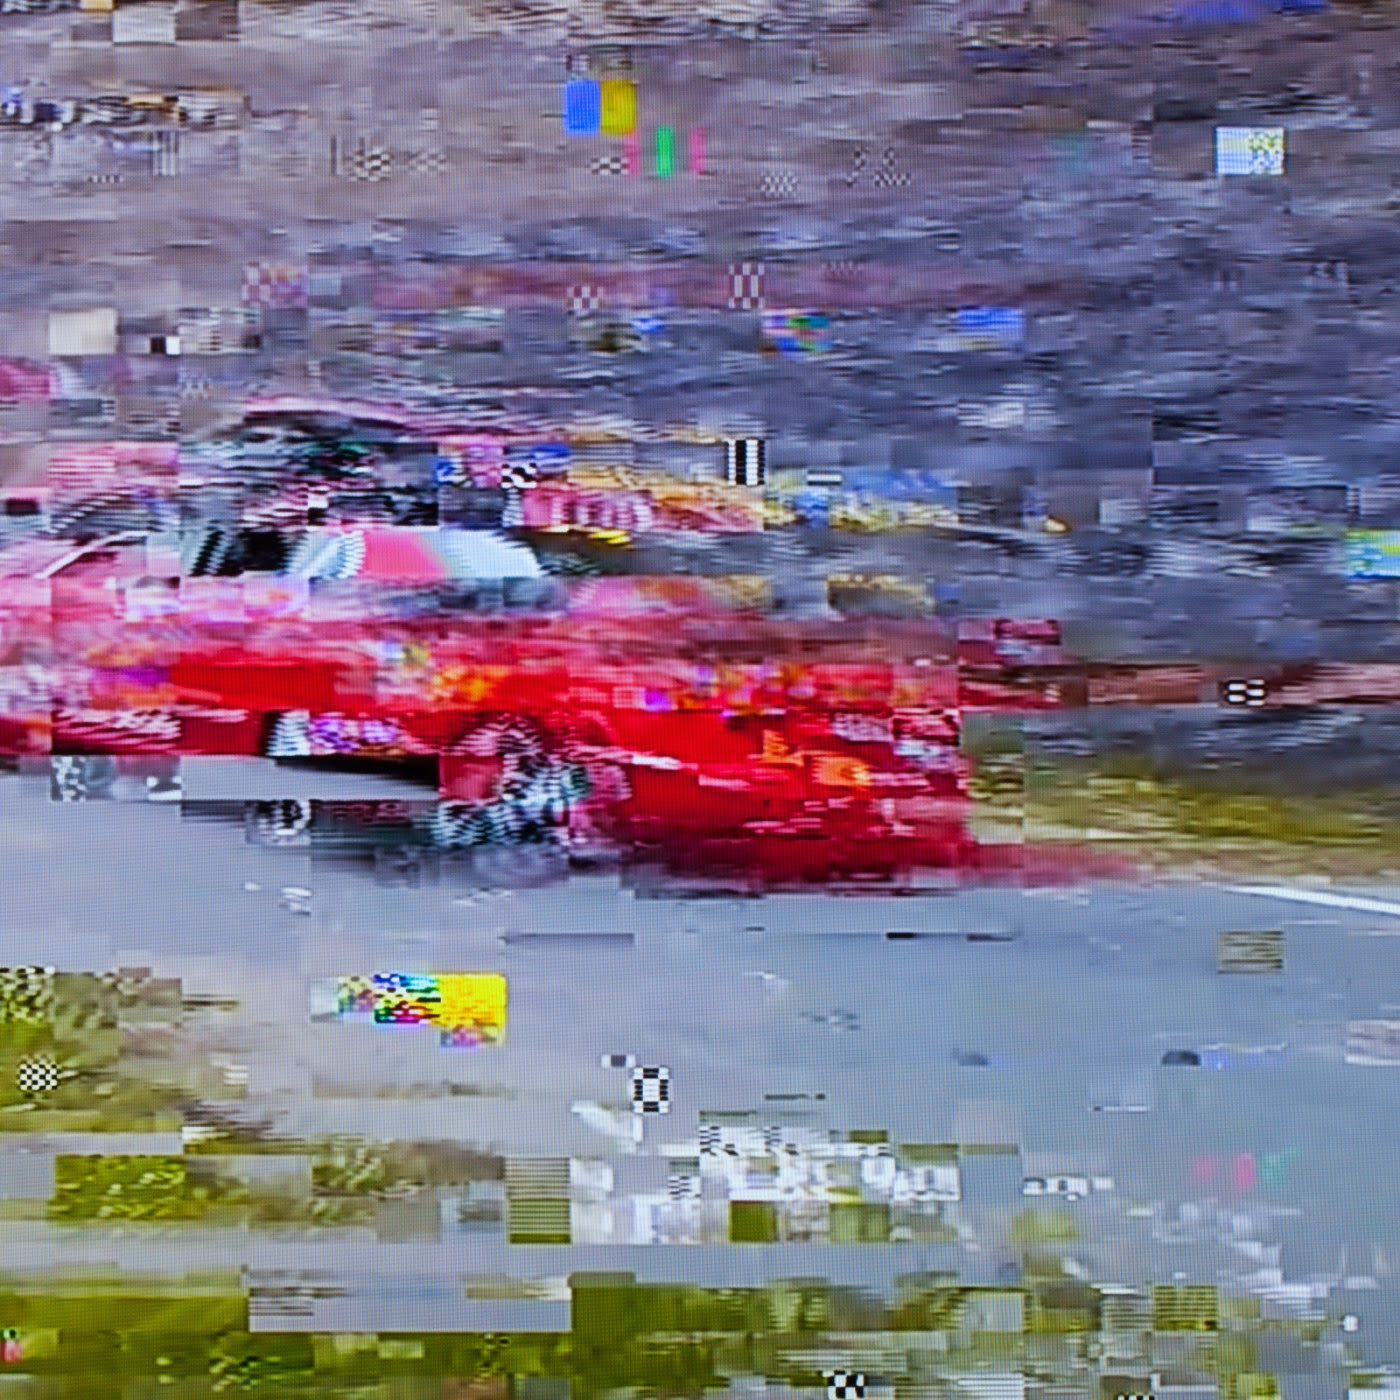 glitch, tim macauley, you won't see this at MoMA, le tour de france, 2014, abstract, abstraction, tv coverage, signal loss, noise to signal ratio, photographic art, graphic, digital, noise, signal